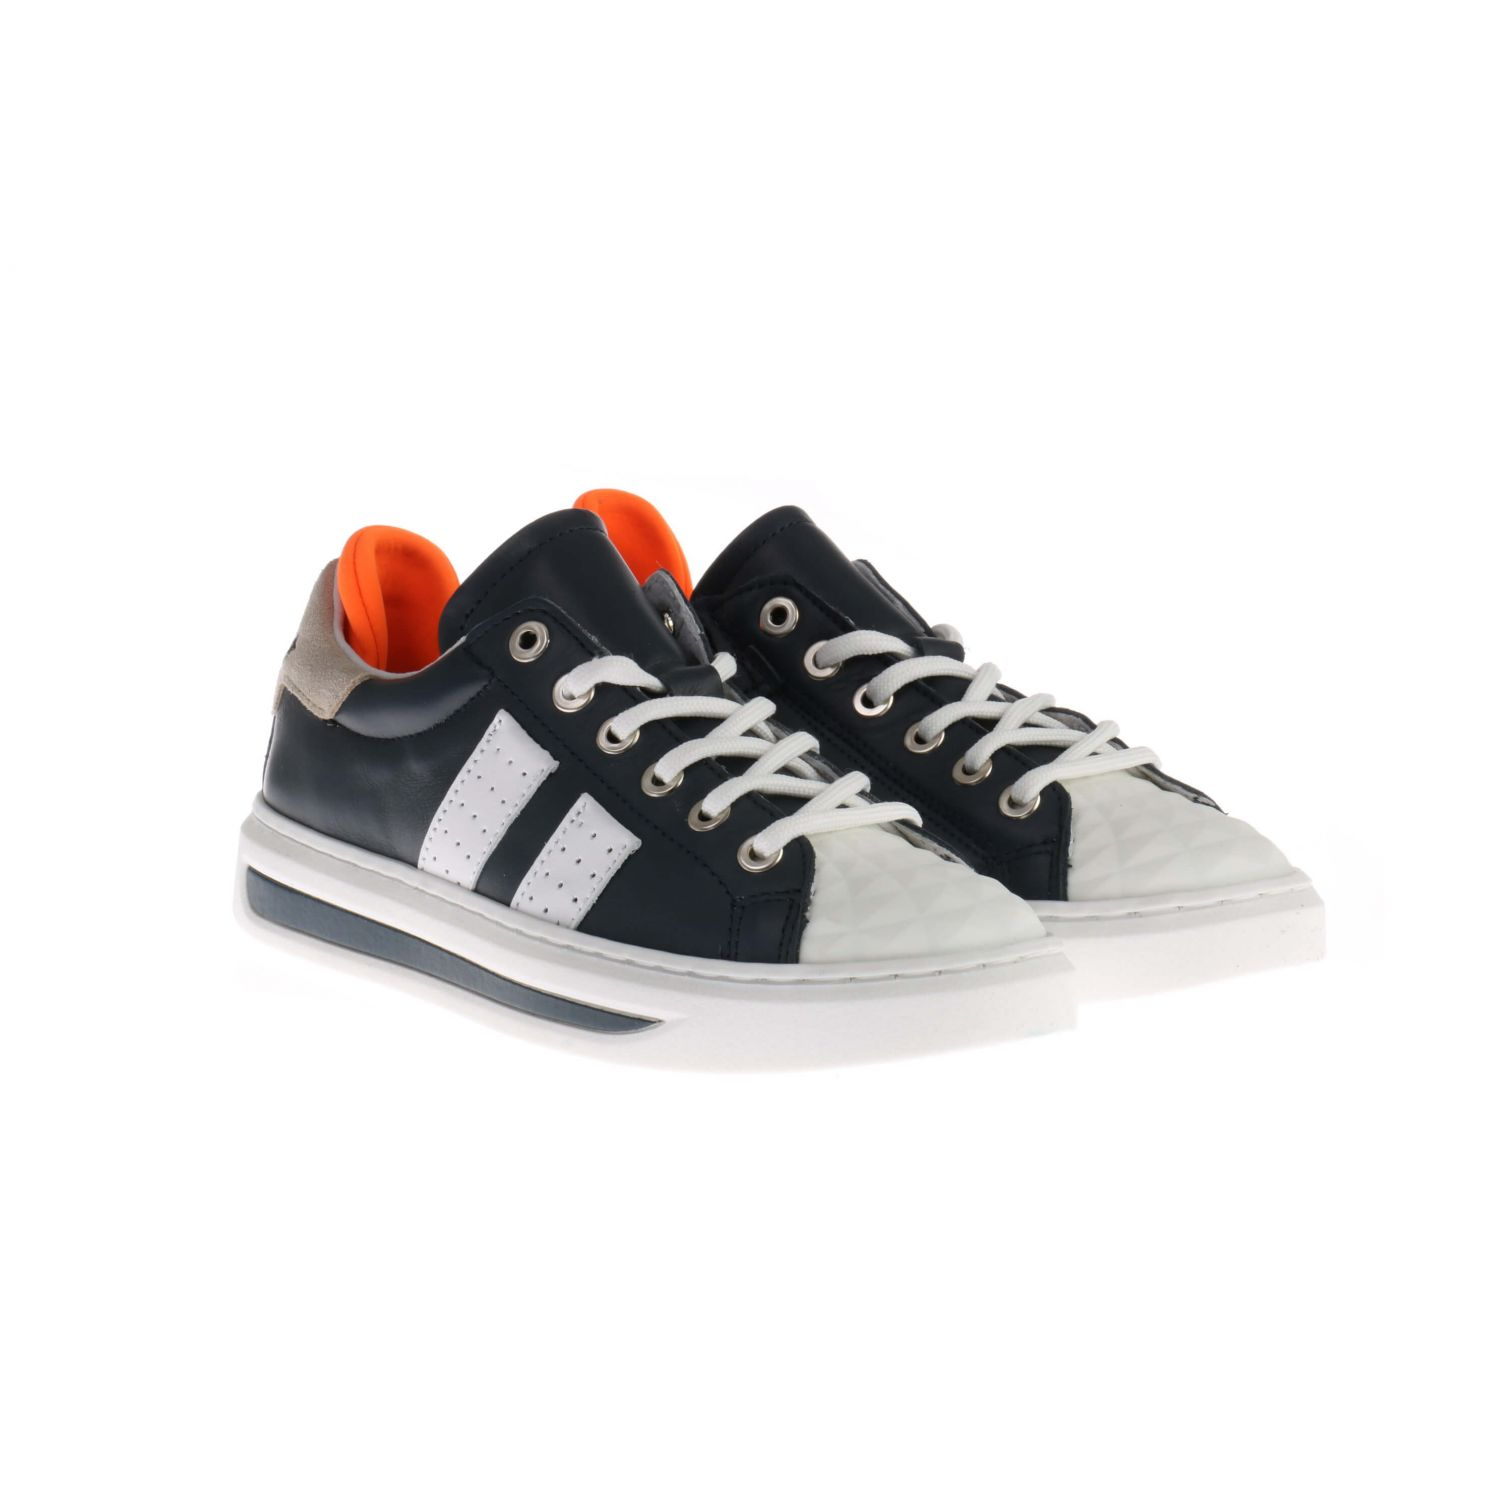 HIP H1887 Sneakers Donkerblauw